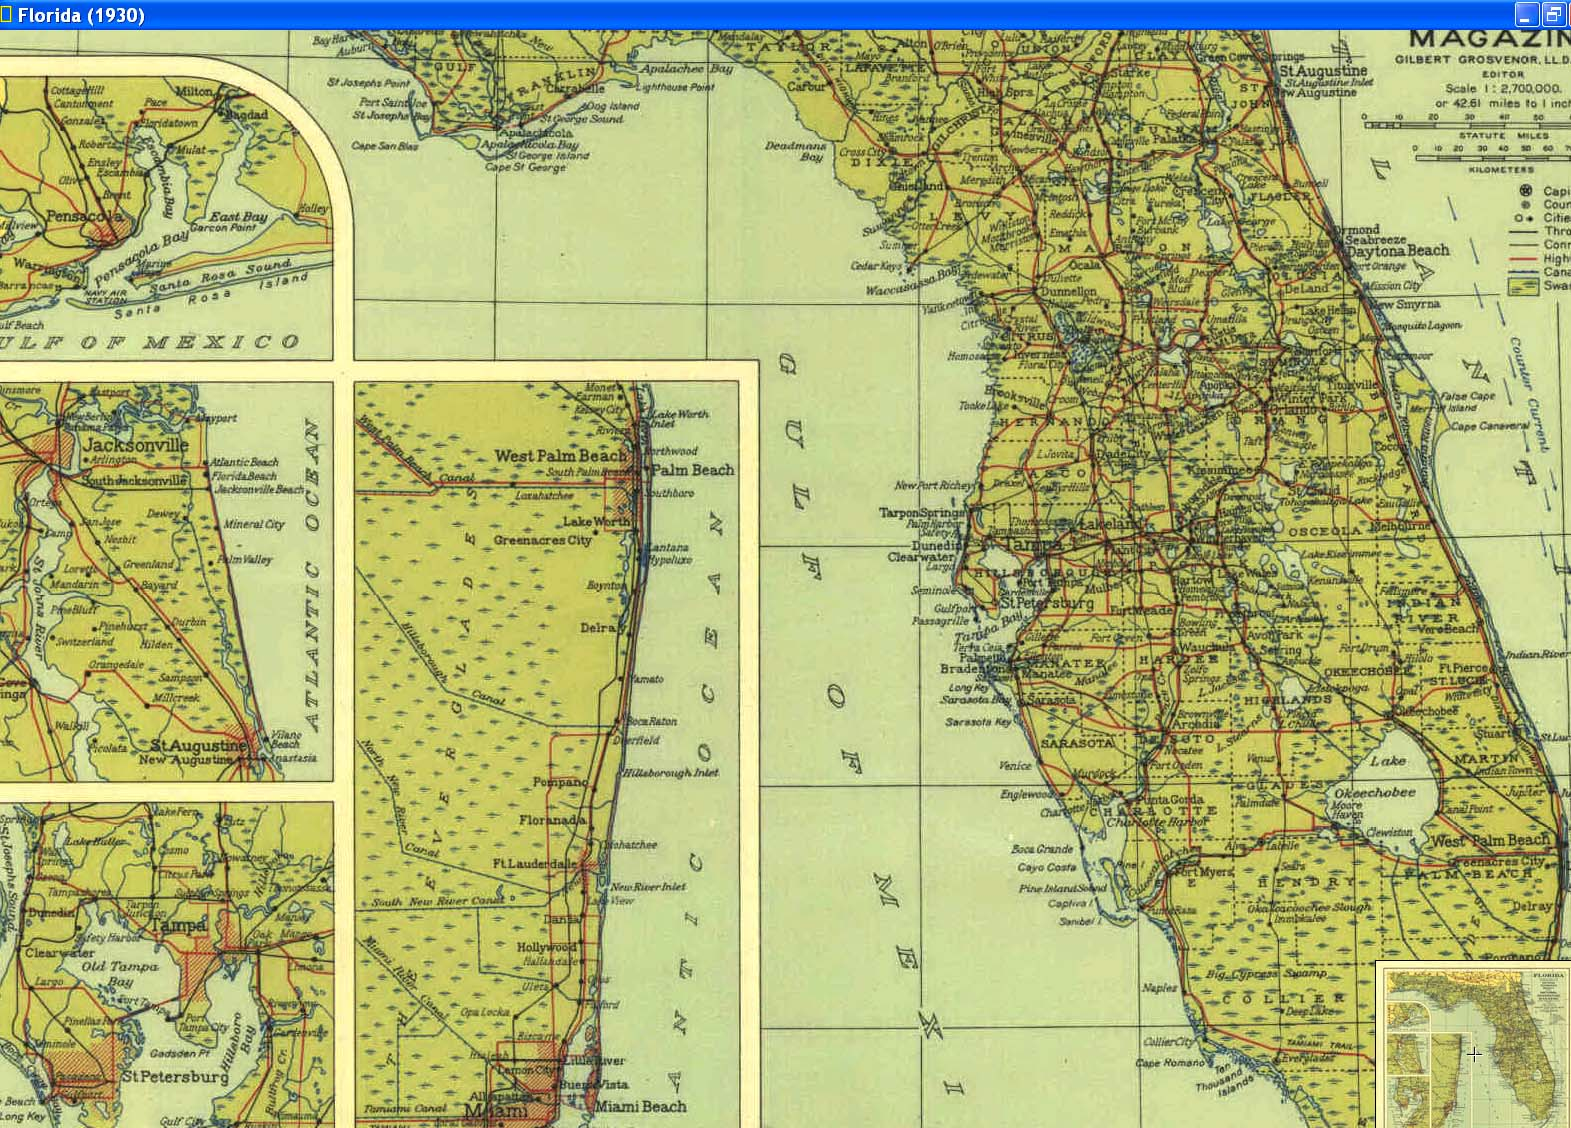 Cascoly Mapfloridabr Maps For Sale - Florida map for sale